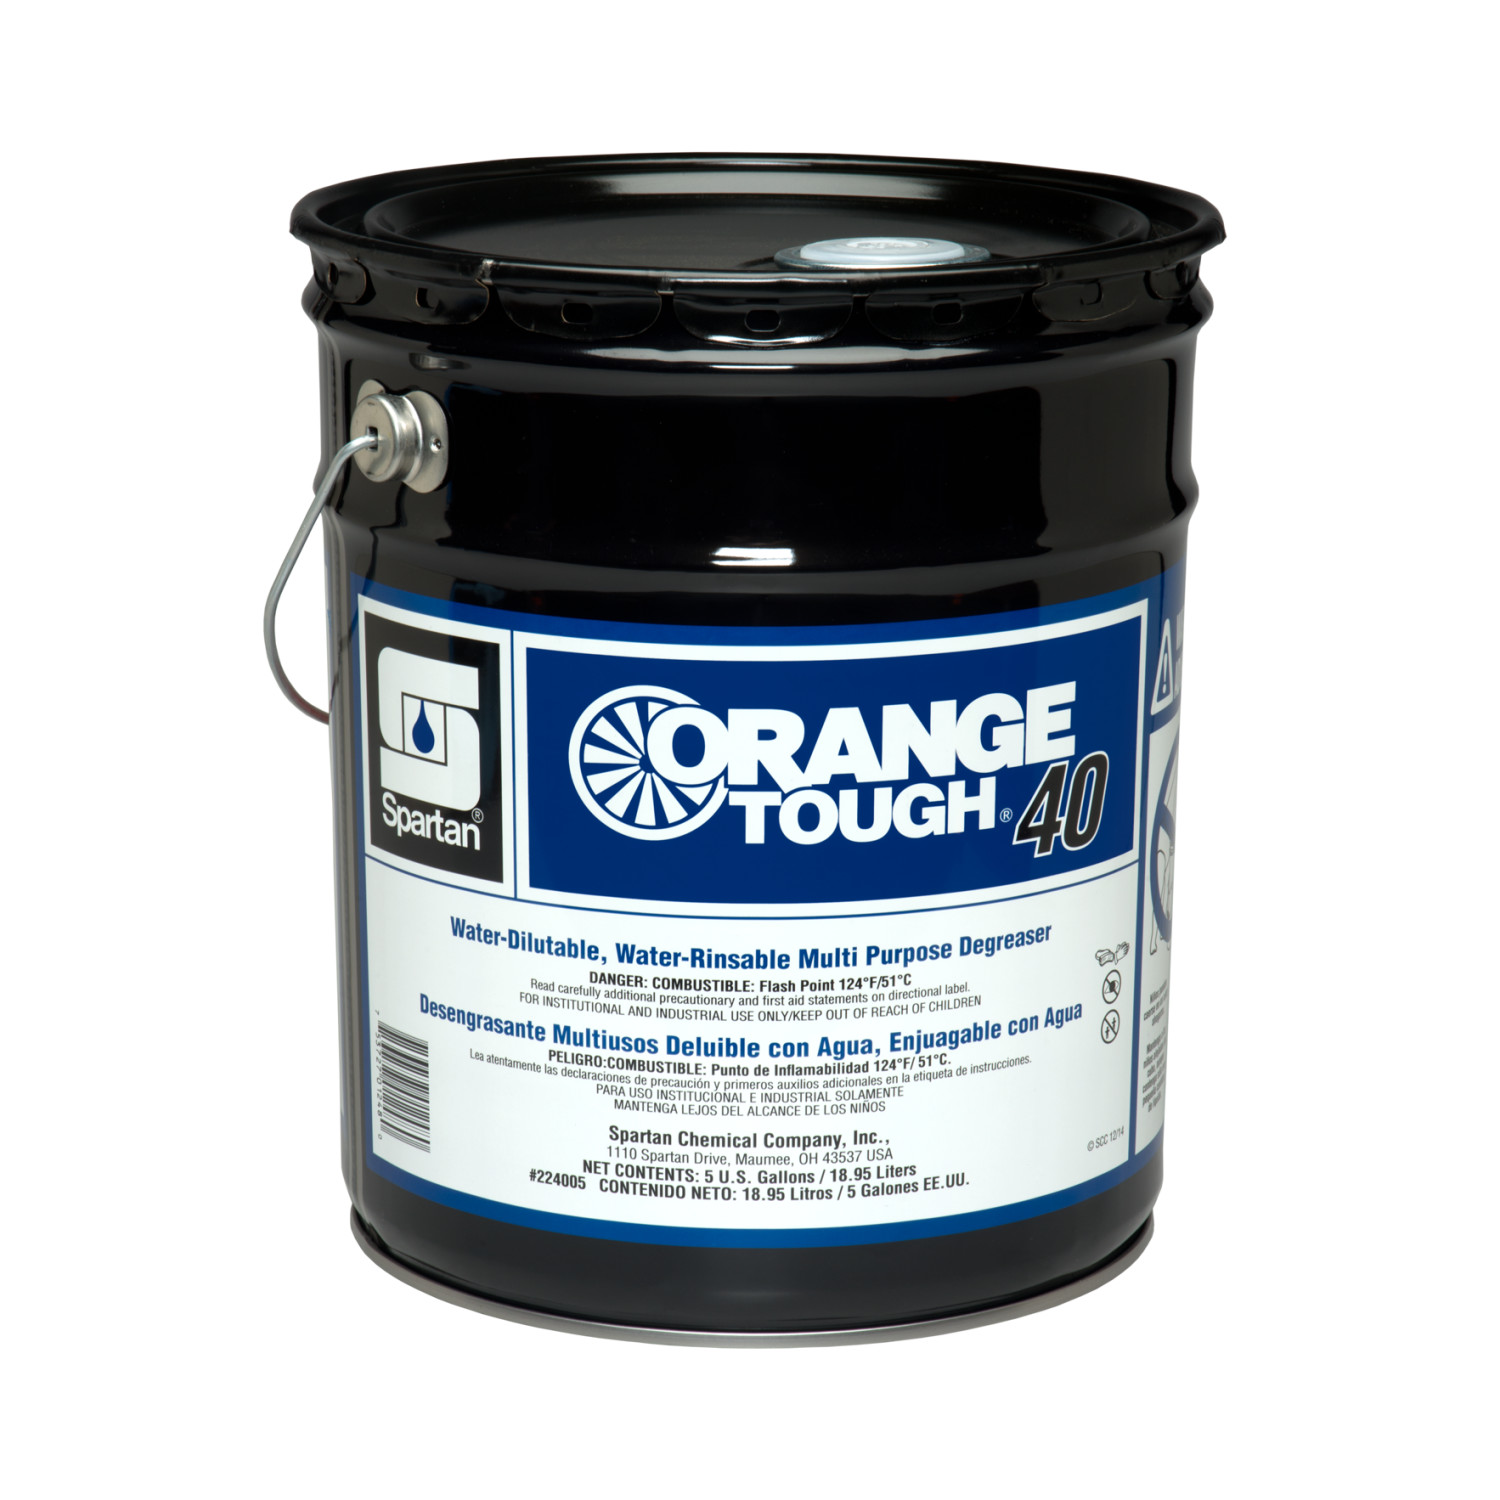 ORANGE TOUGH 40 DEGREASER (5)